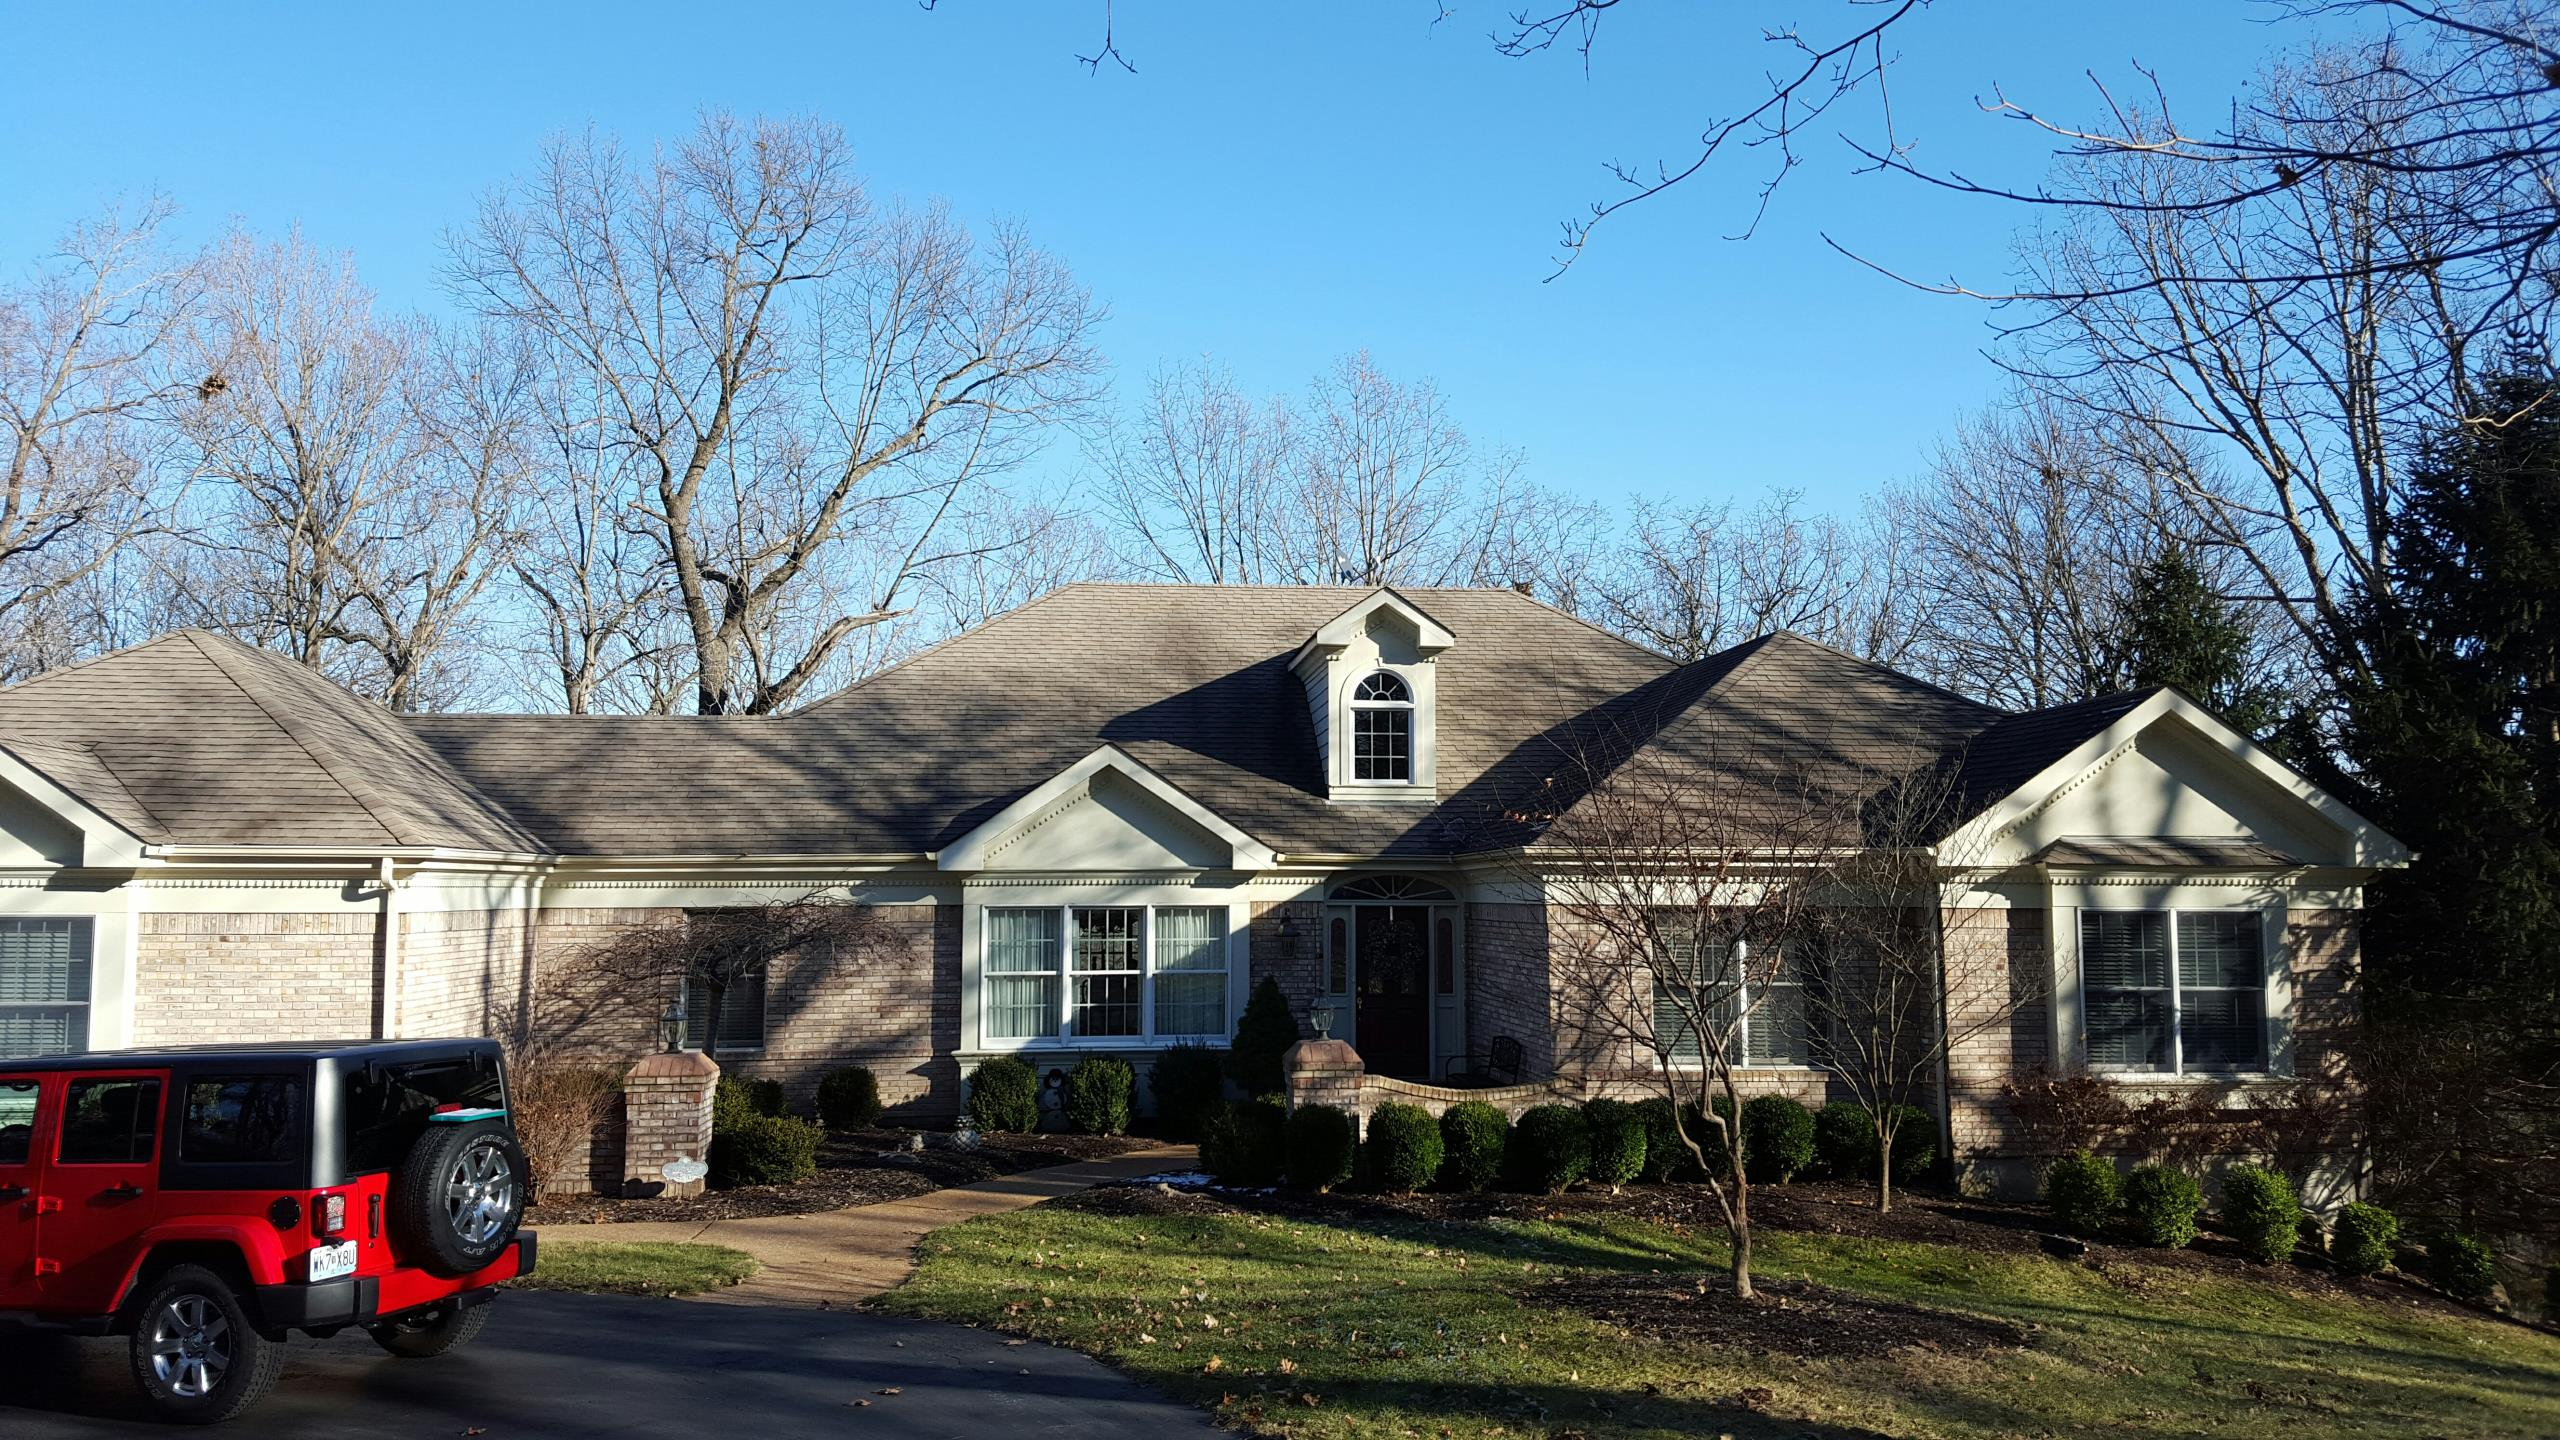 Wildwood, MO - Inspect for damaged roof, gutters fascia. Wildwood.